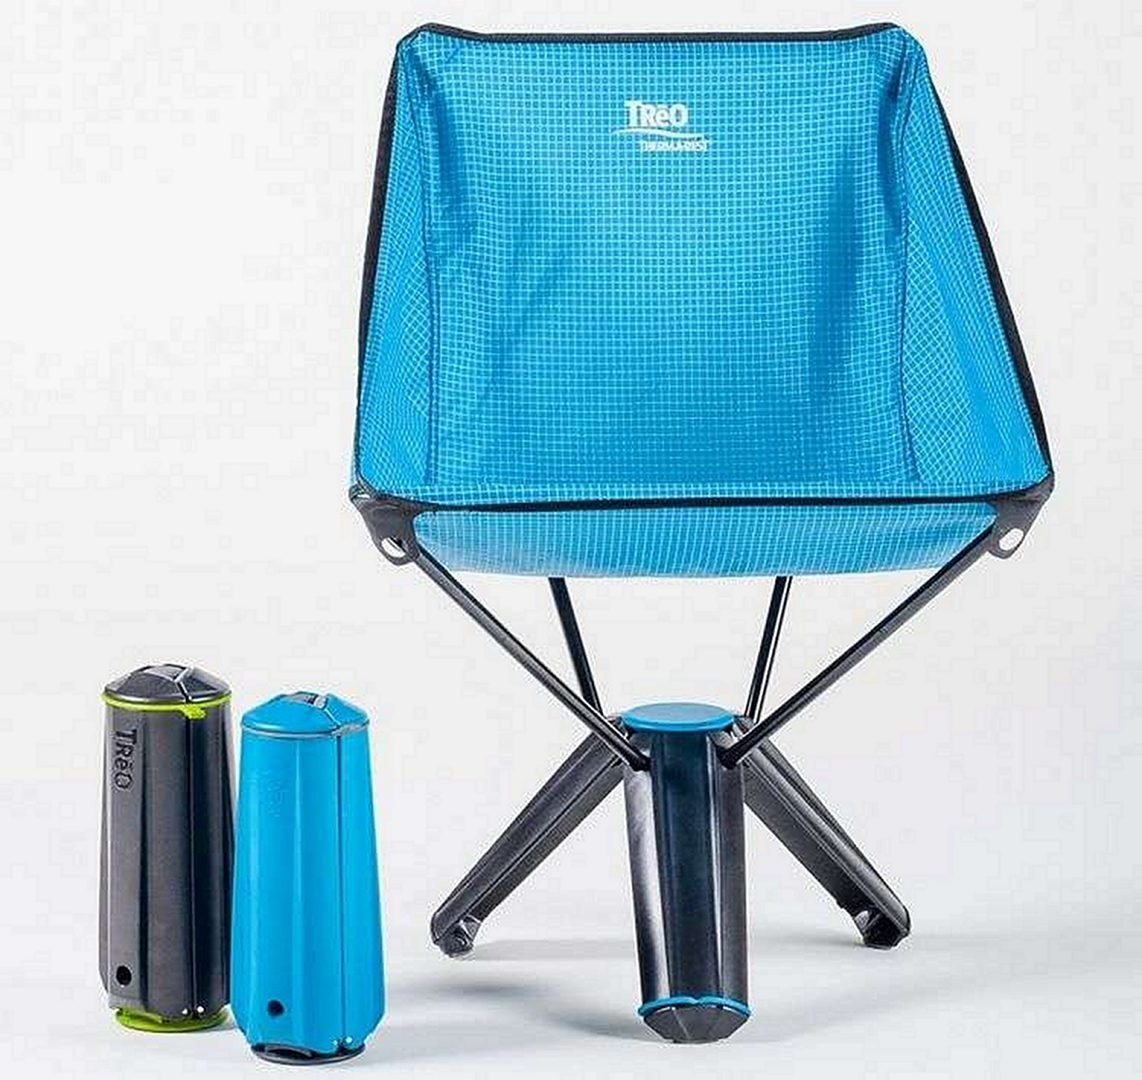 Treo Camping Chair, blue